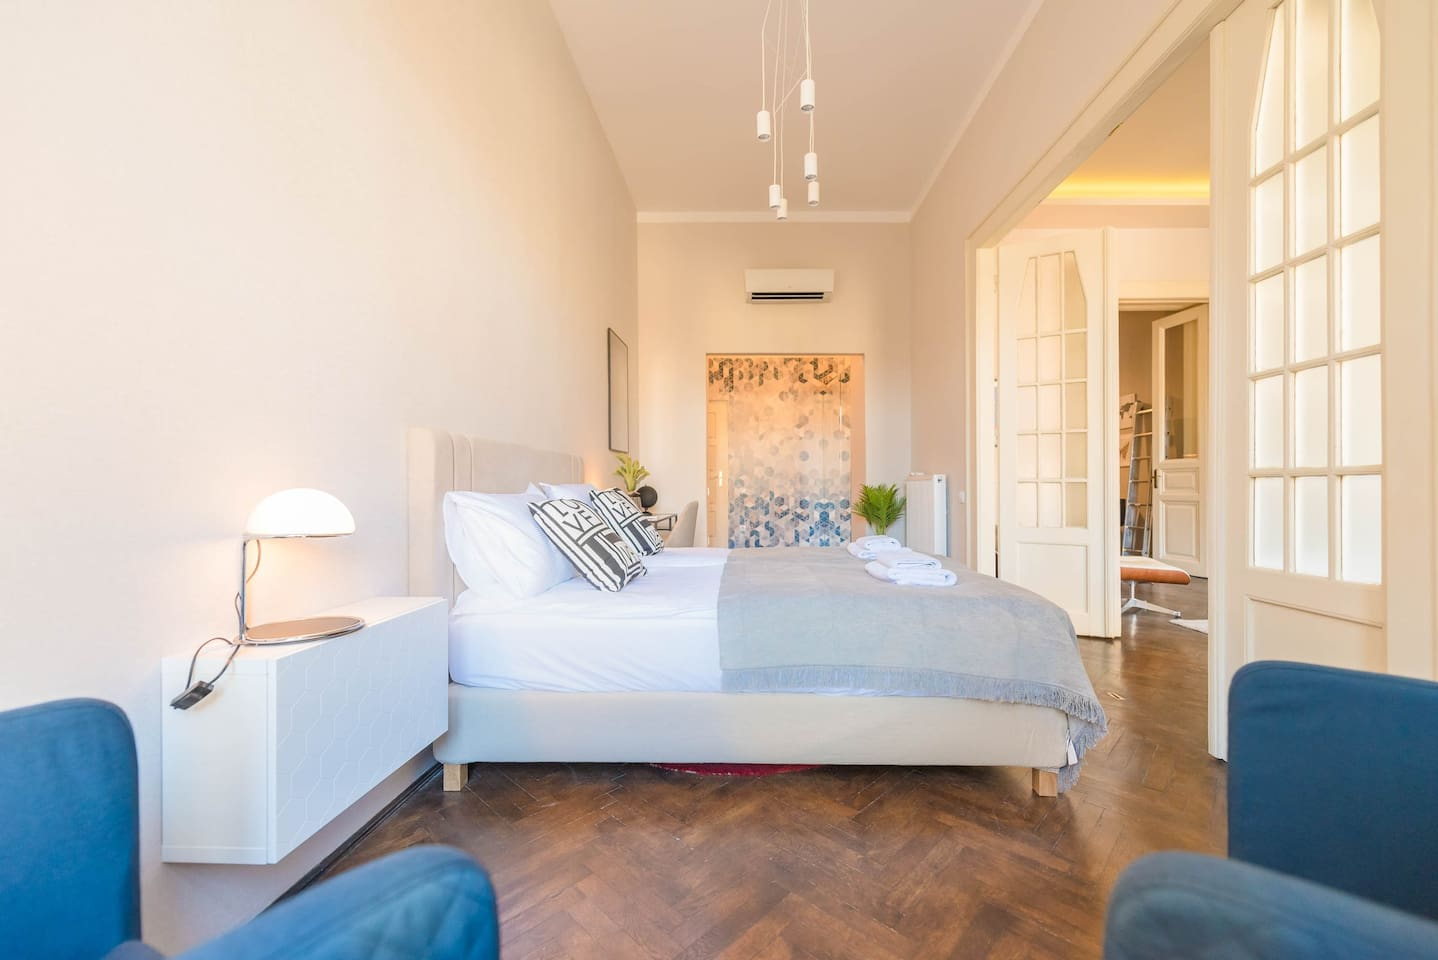 Second bedroom with king-sized bed, luxury linens, walk-in-wardrobe and en-suite bathroom.